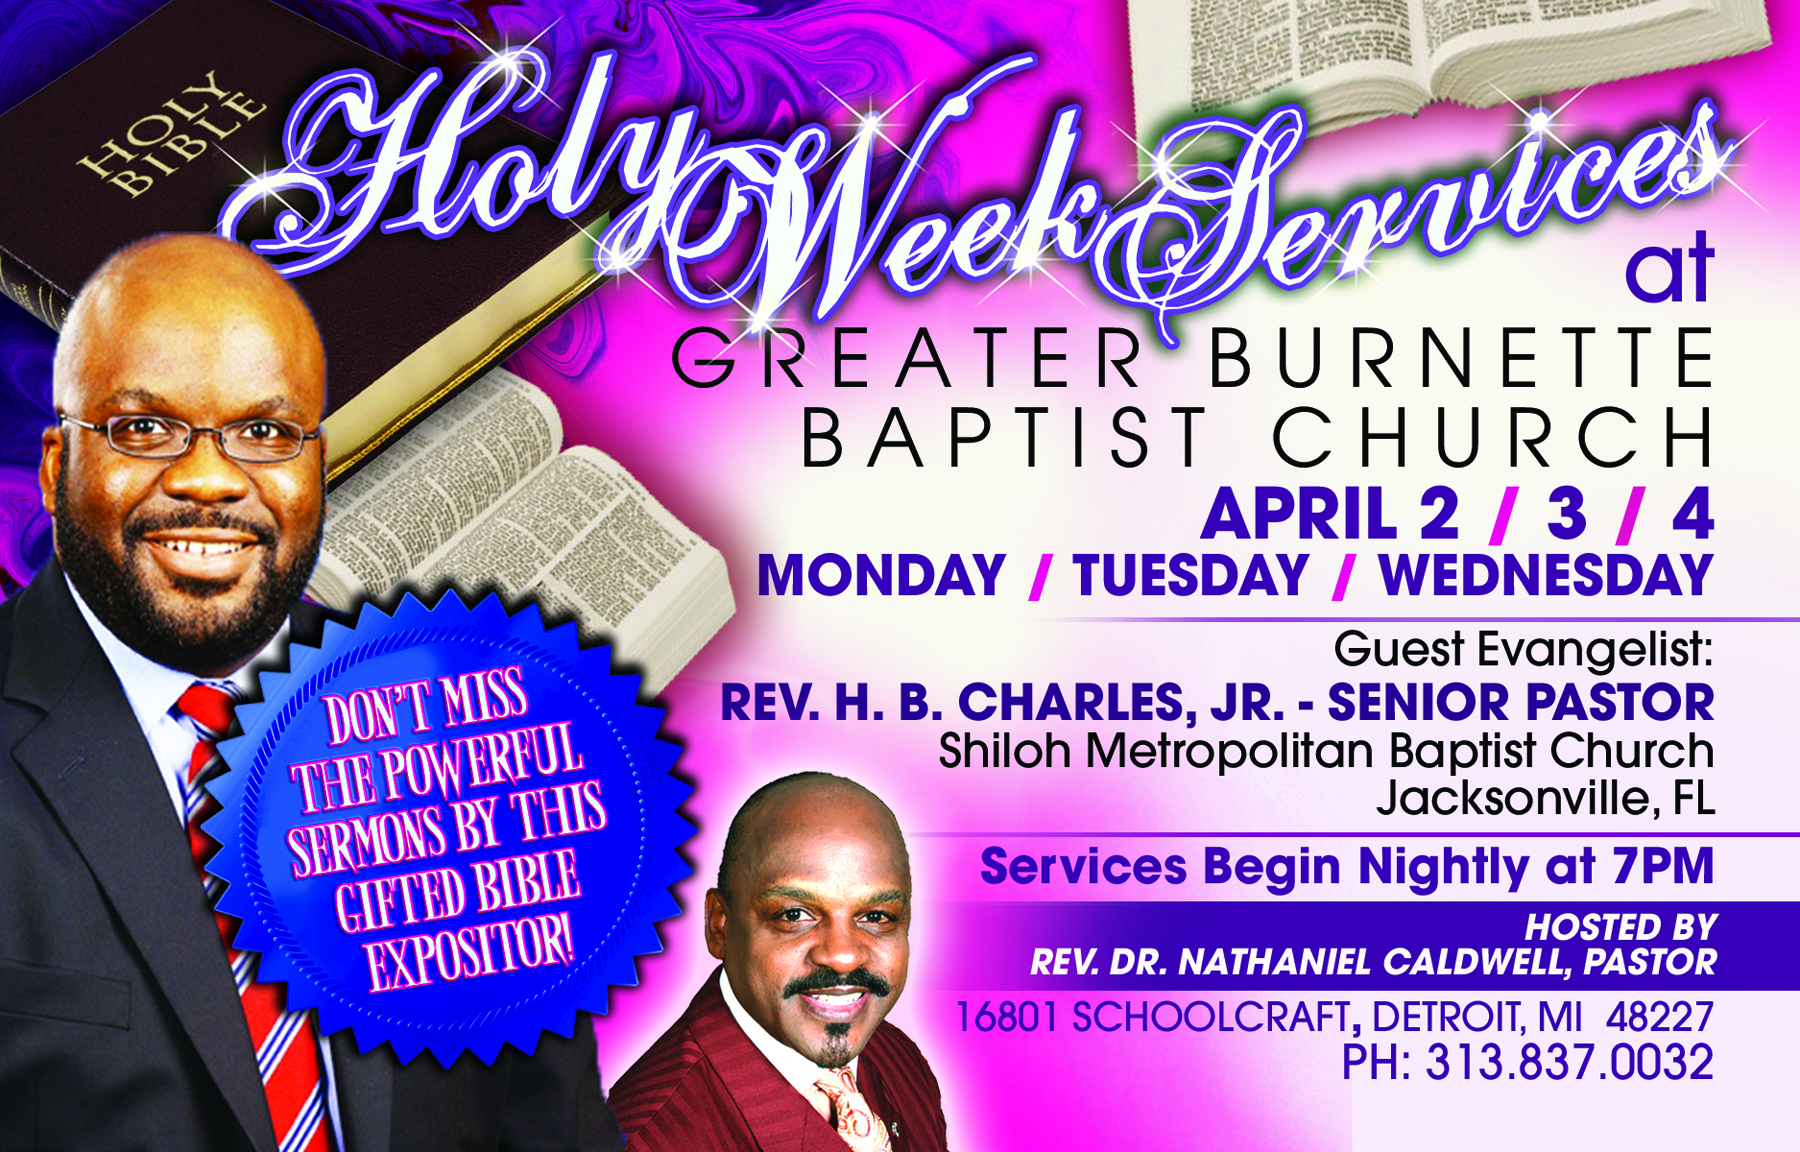 Holy Week Services- Greater Burnette